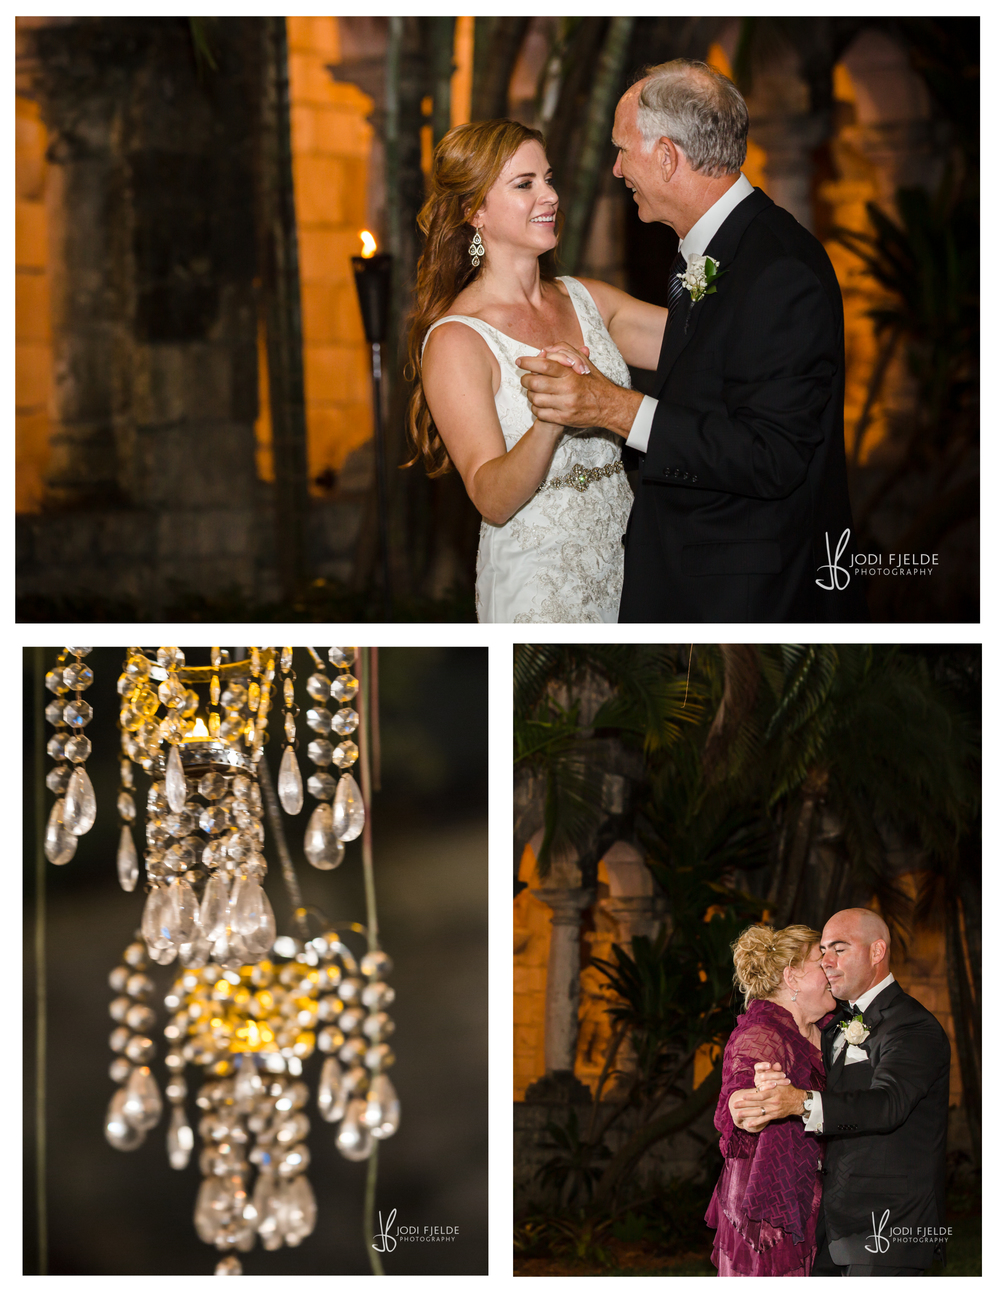 Ancient_Spanish_Monastery_Miami_Florida_wedding_Gio_Iggy_Jodi_Fjelde_Photography_17.jpg